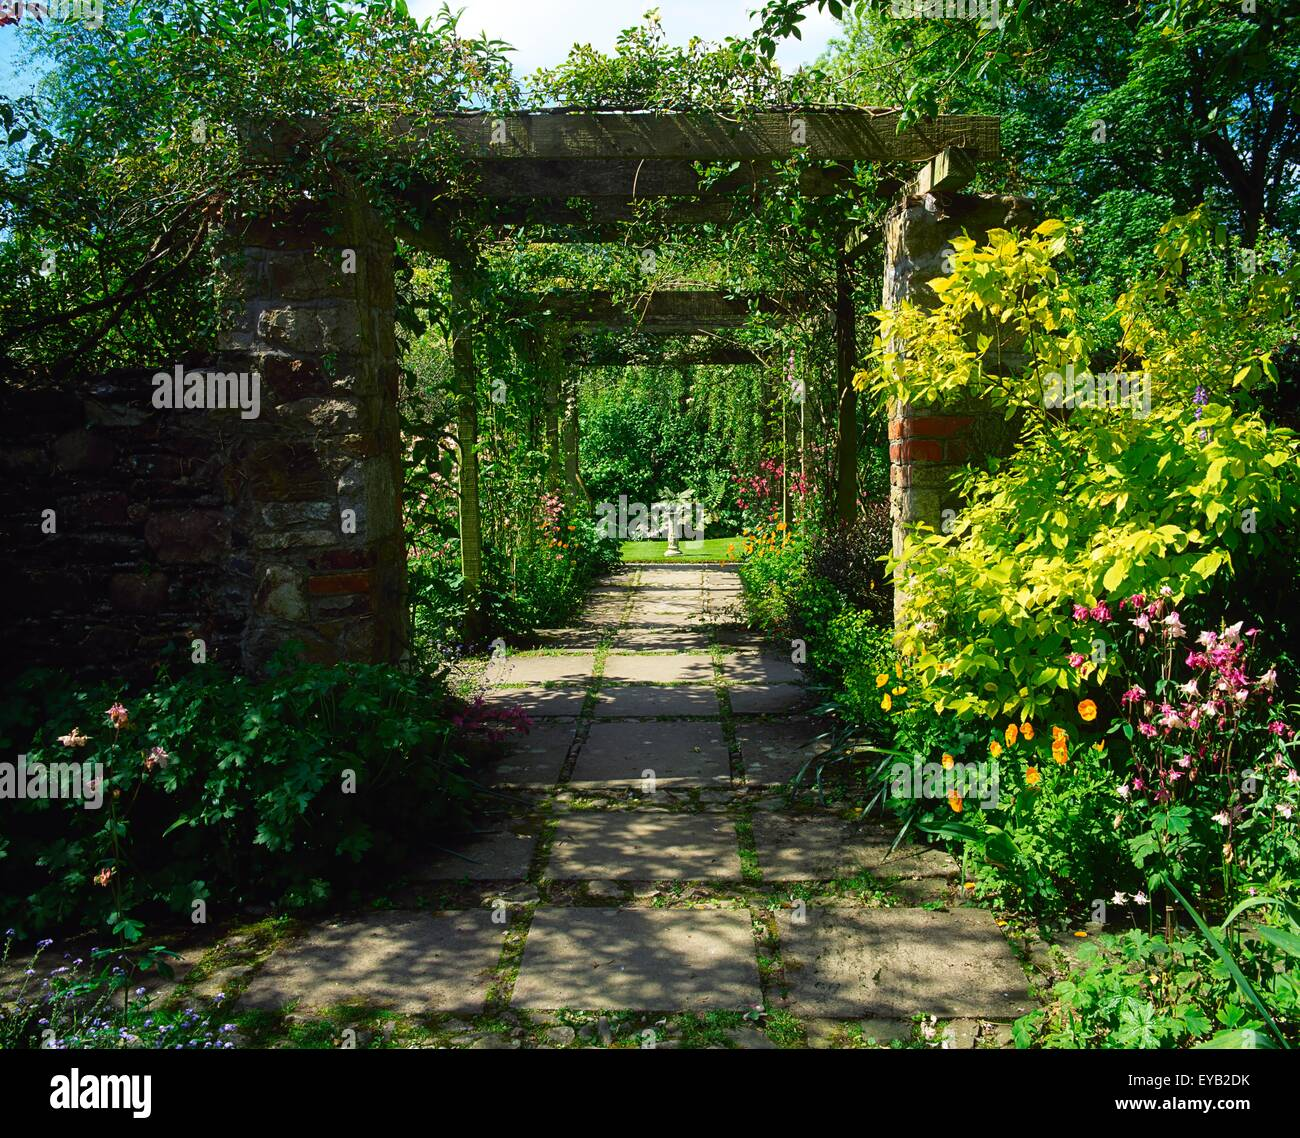 Pergola Design Ireland: Ram House Gardens, Co Wexford, Ireland; Pergola With